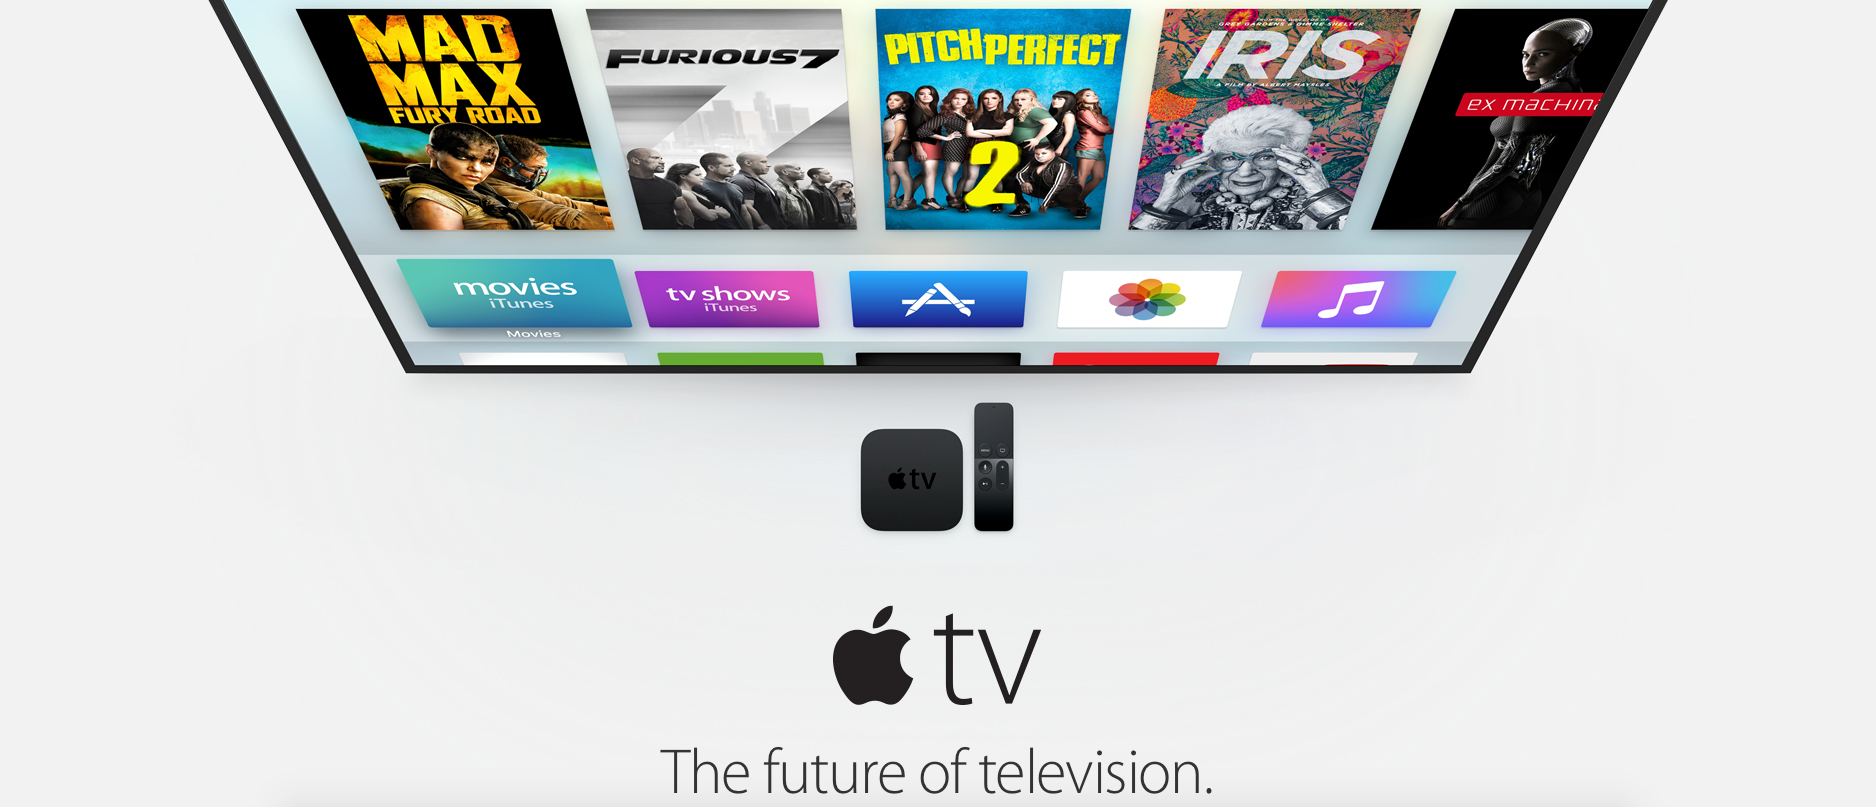 Amazon will ban sales of the Apple TV and Google's Chromecast later this month